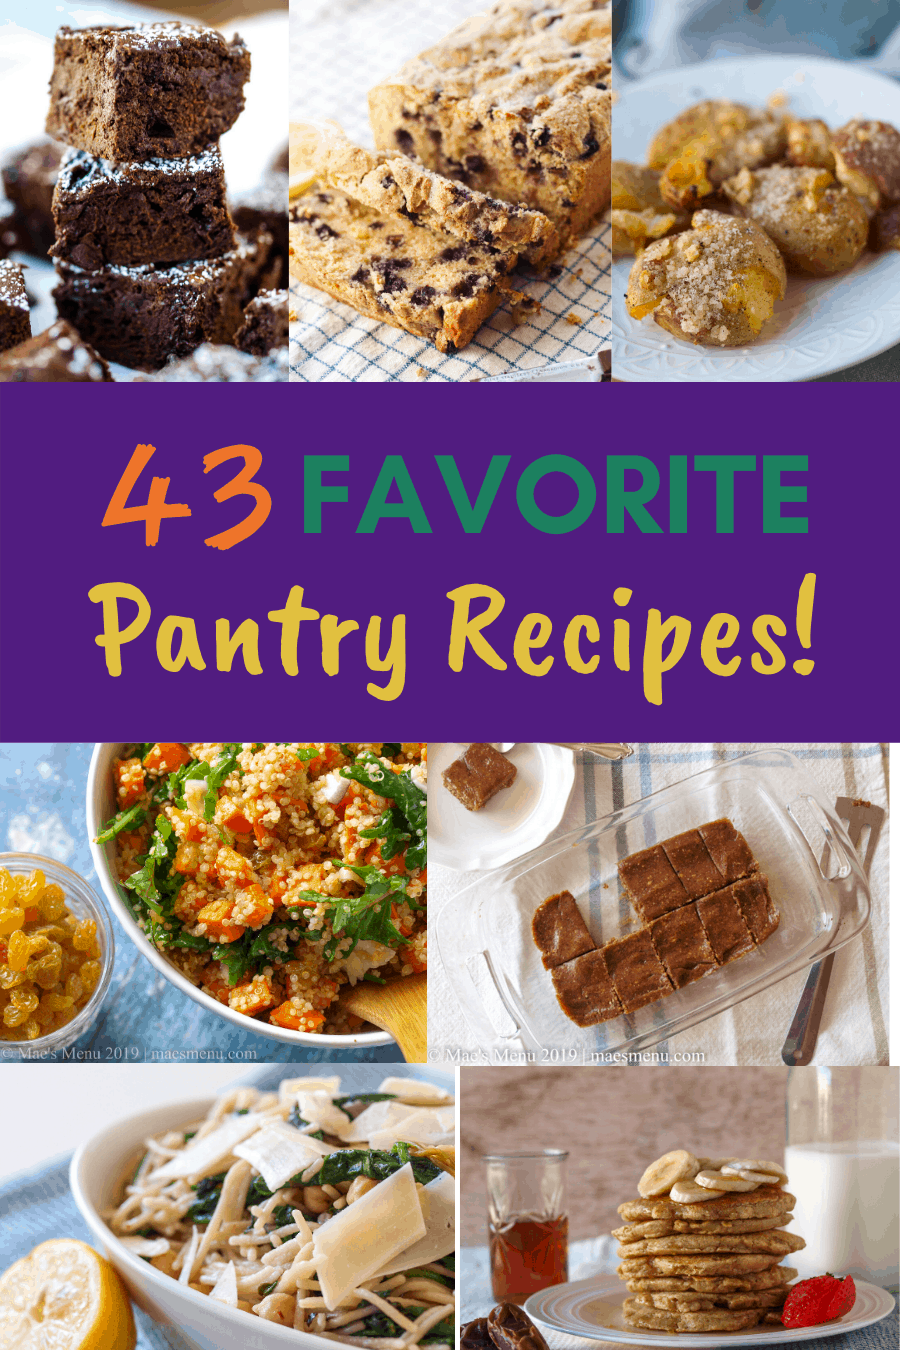 Pinterest pin for 43 favorite pantry recipes